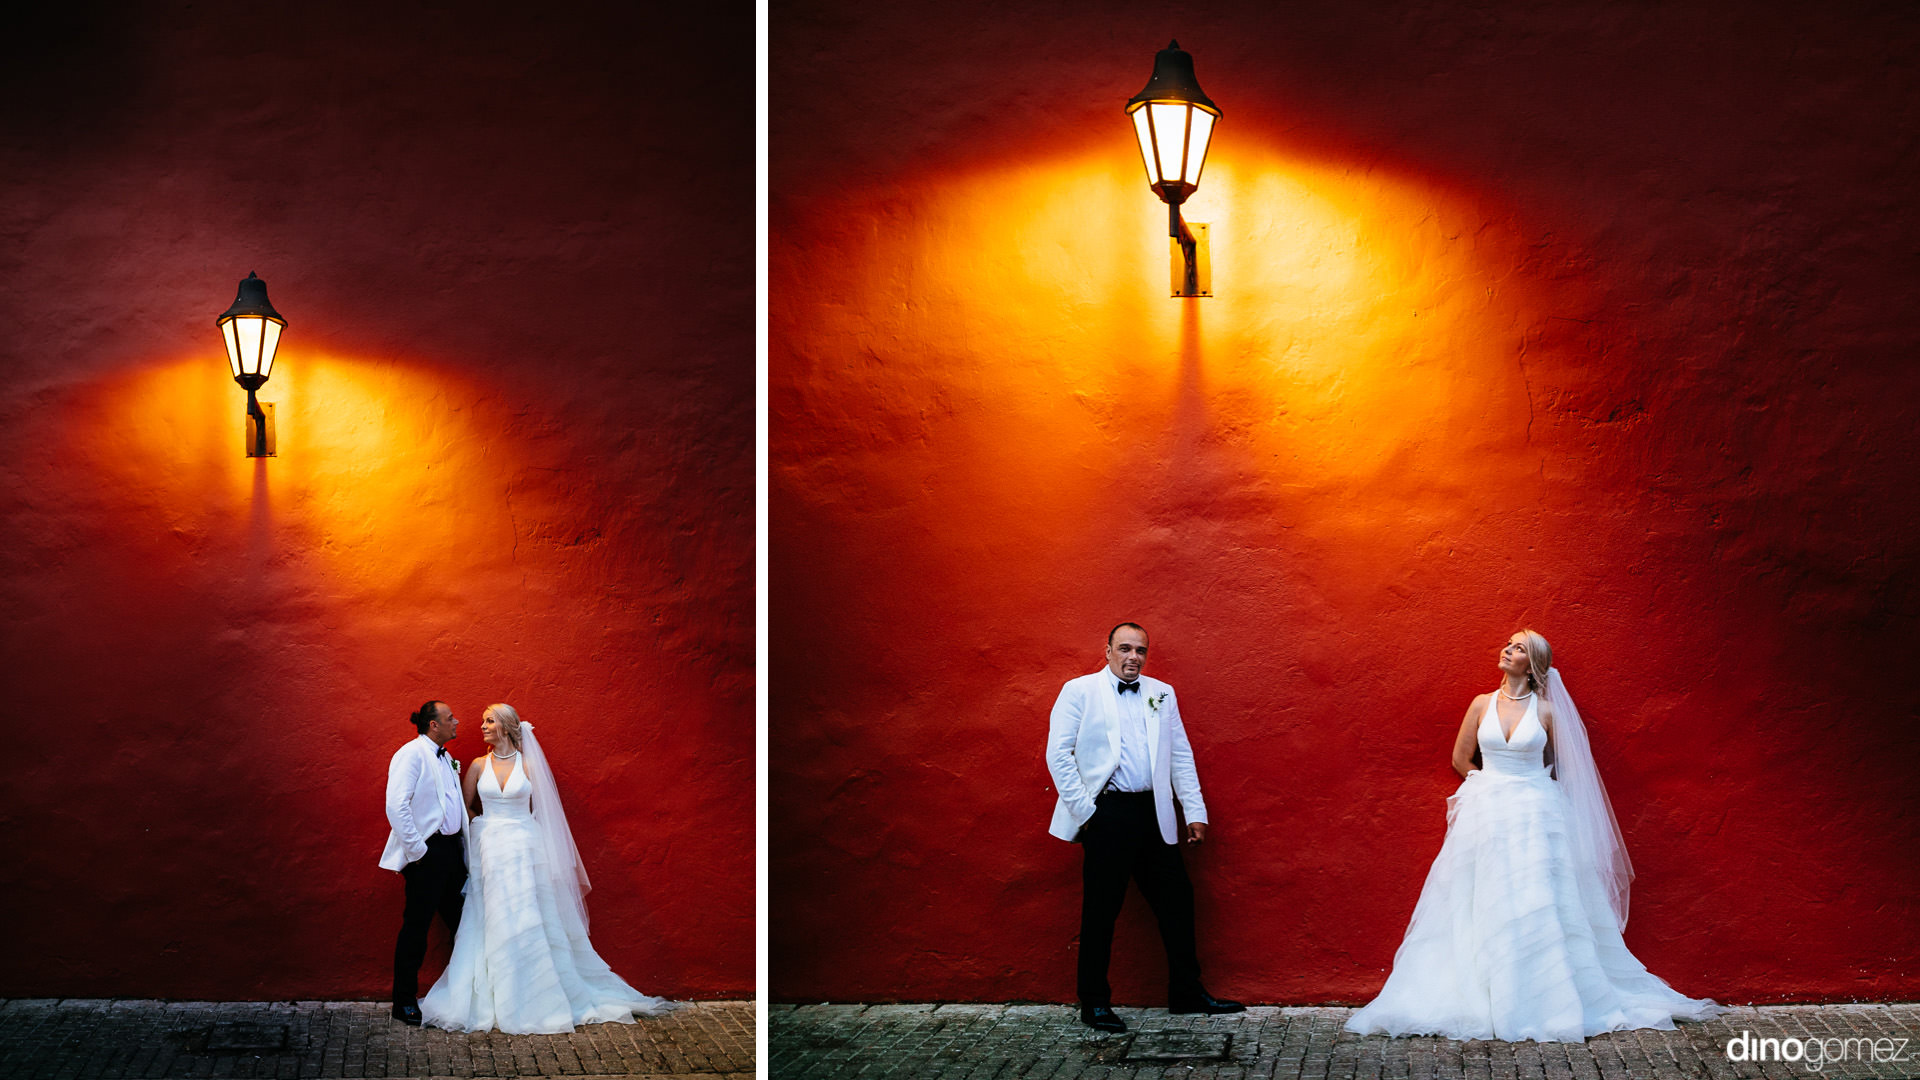 Epic Wedding Photographer In Colombia For Destination Weddings - St